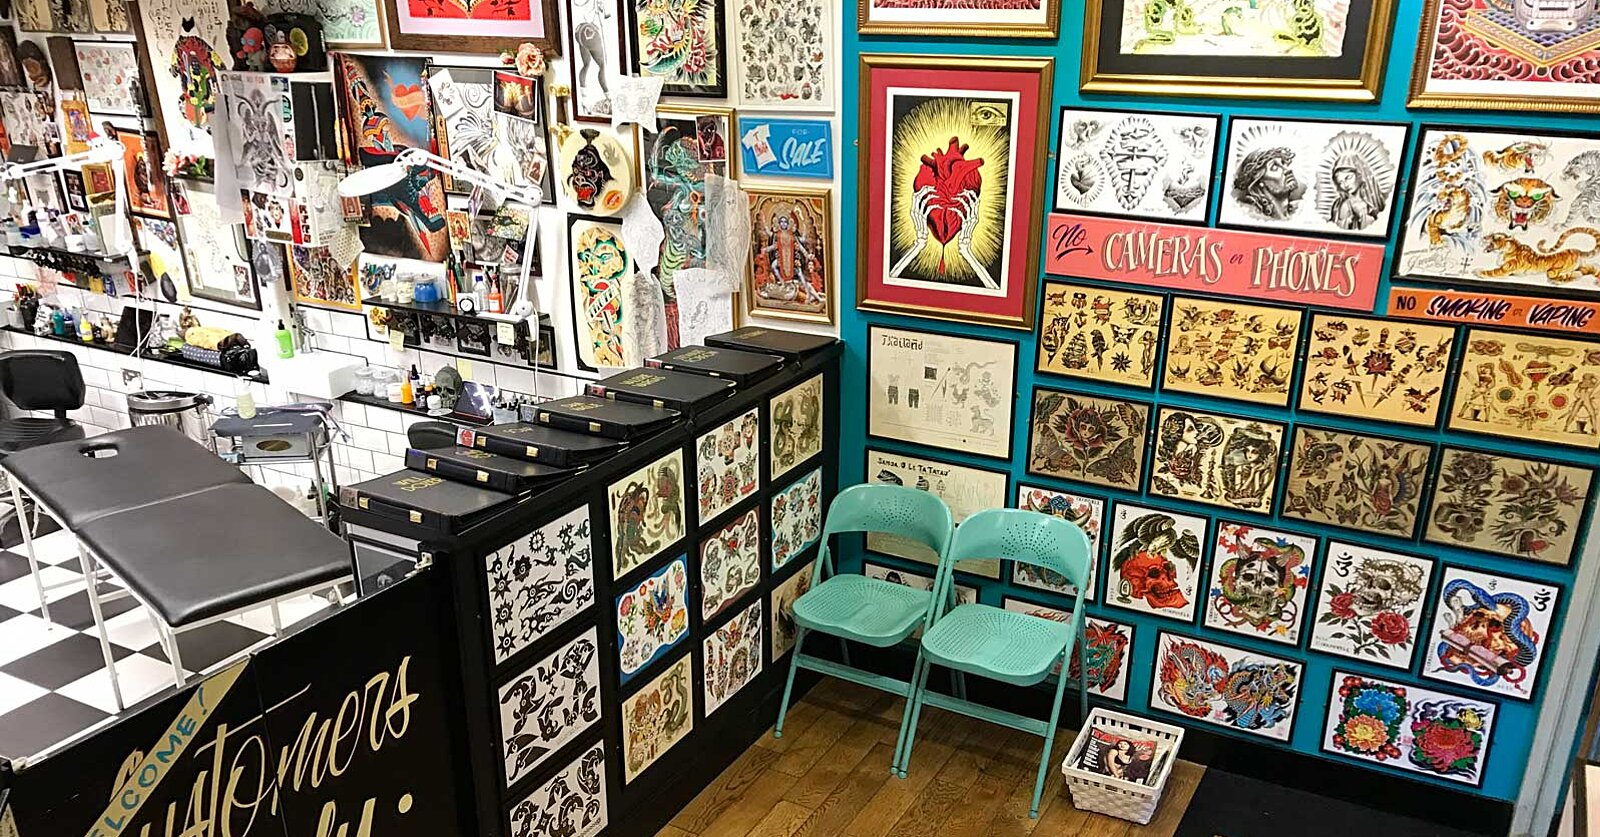 10 Tattoo Parlors Around The World That Can Give You An Amazing And Permanent Souvenir Travel Leisure Come see why we're rated top amongst other tattoo shops. 10 tattoo parlors around the world that